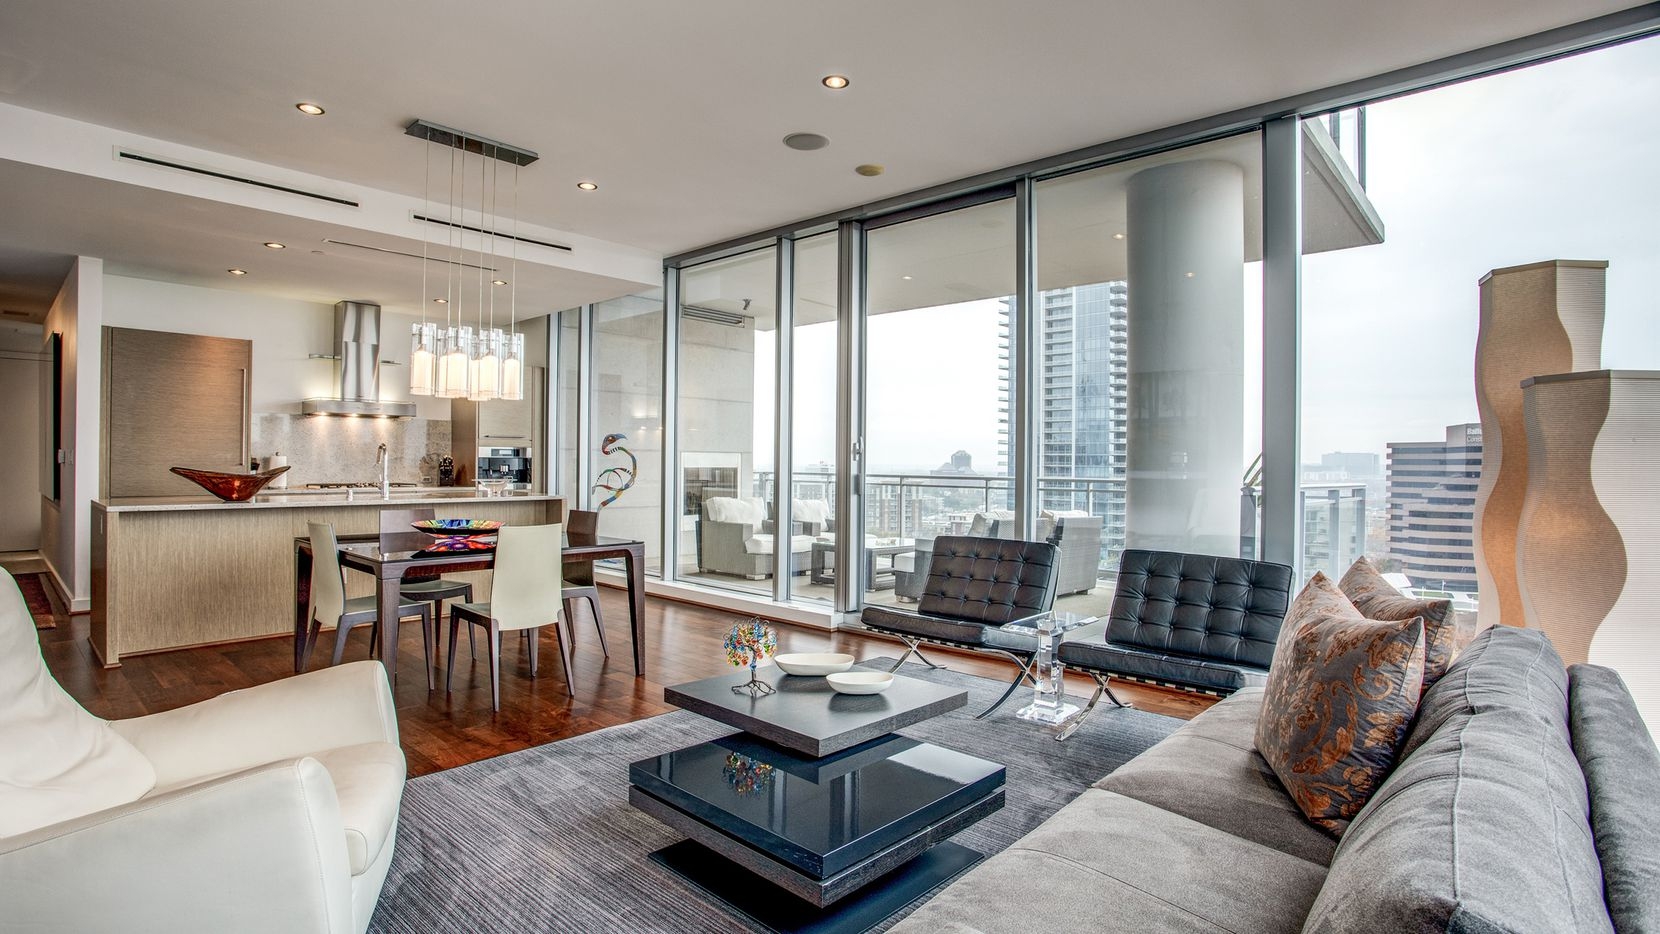 Housekeeping, dogwalkers and a stellar location are some of the amenities at Azure in Uptown. Unit 1205 has two bedrooms and 2½ bathrooms and is listed at $845,000.